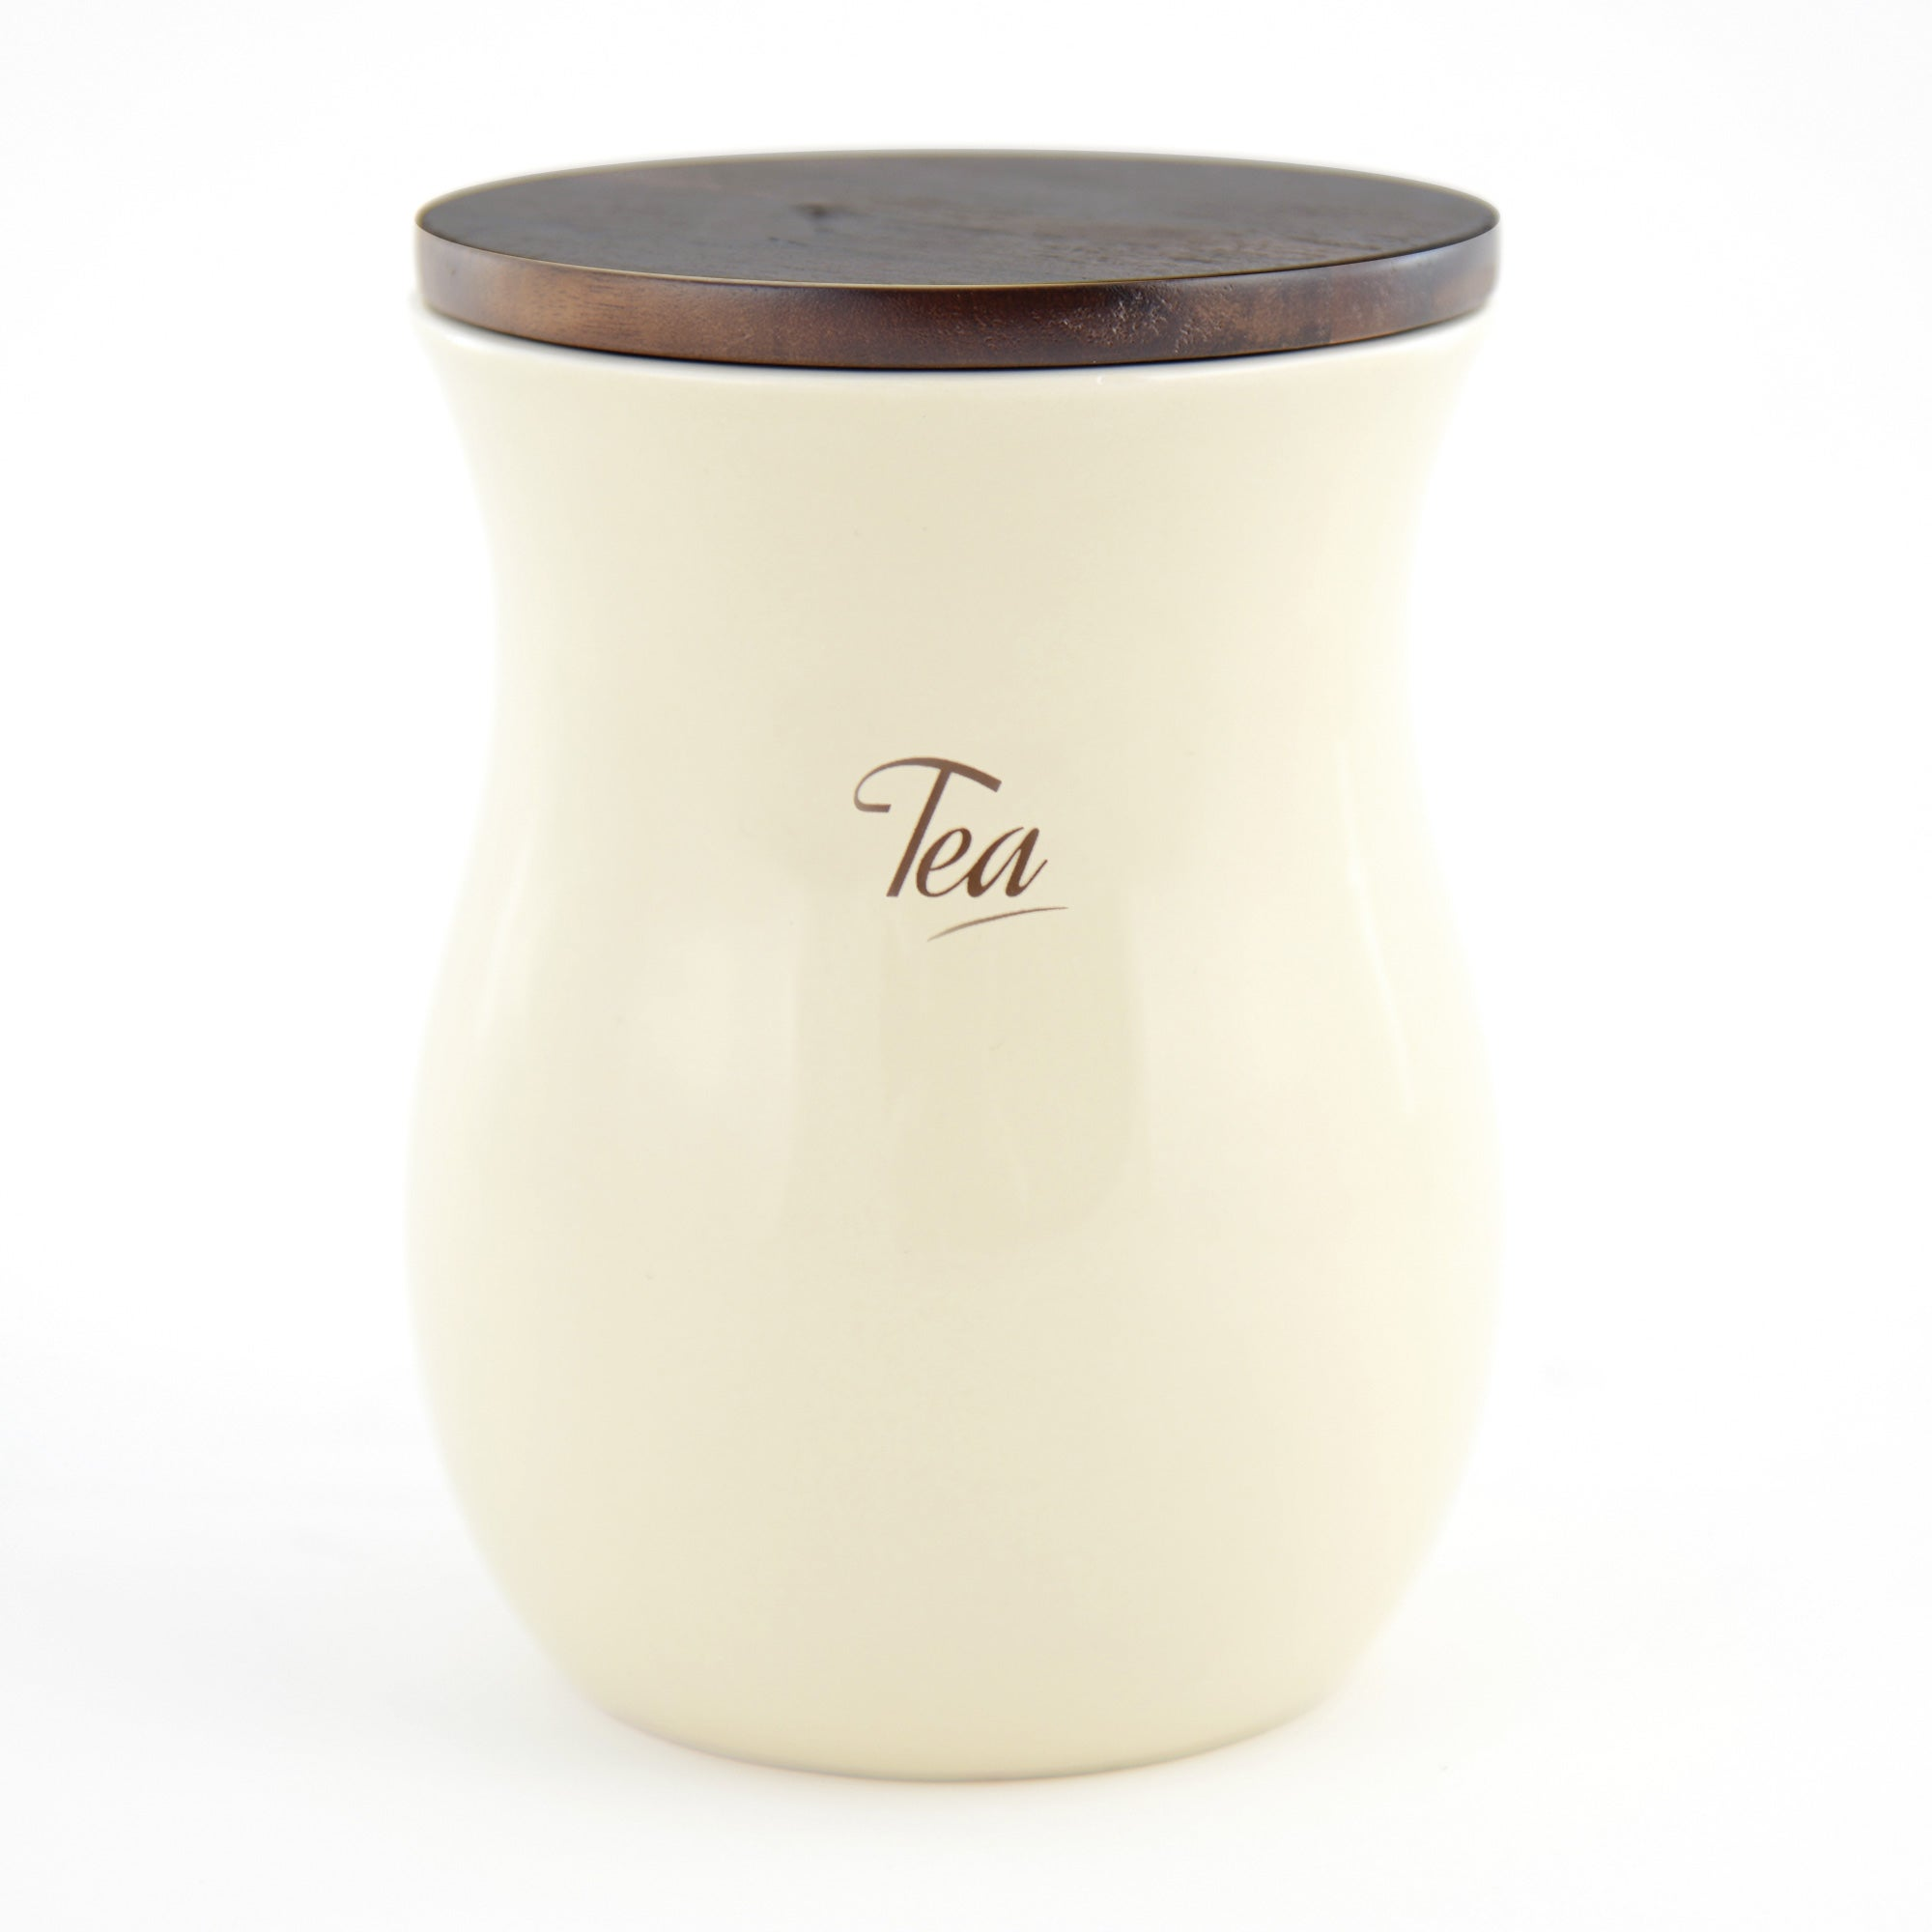 Hourglass Cream Tea Canister